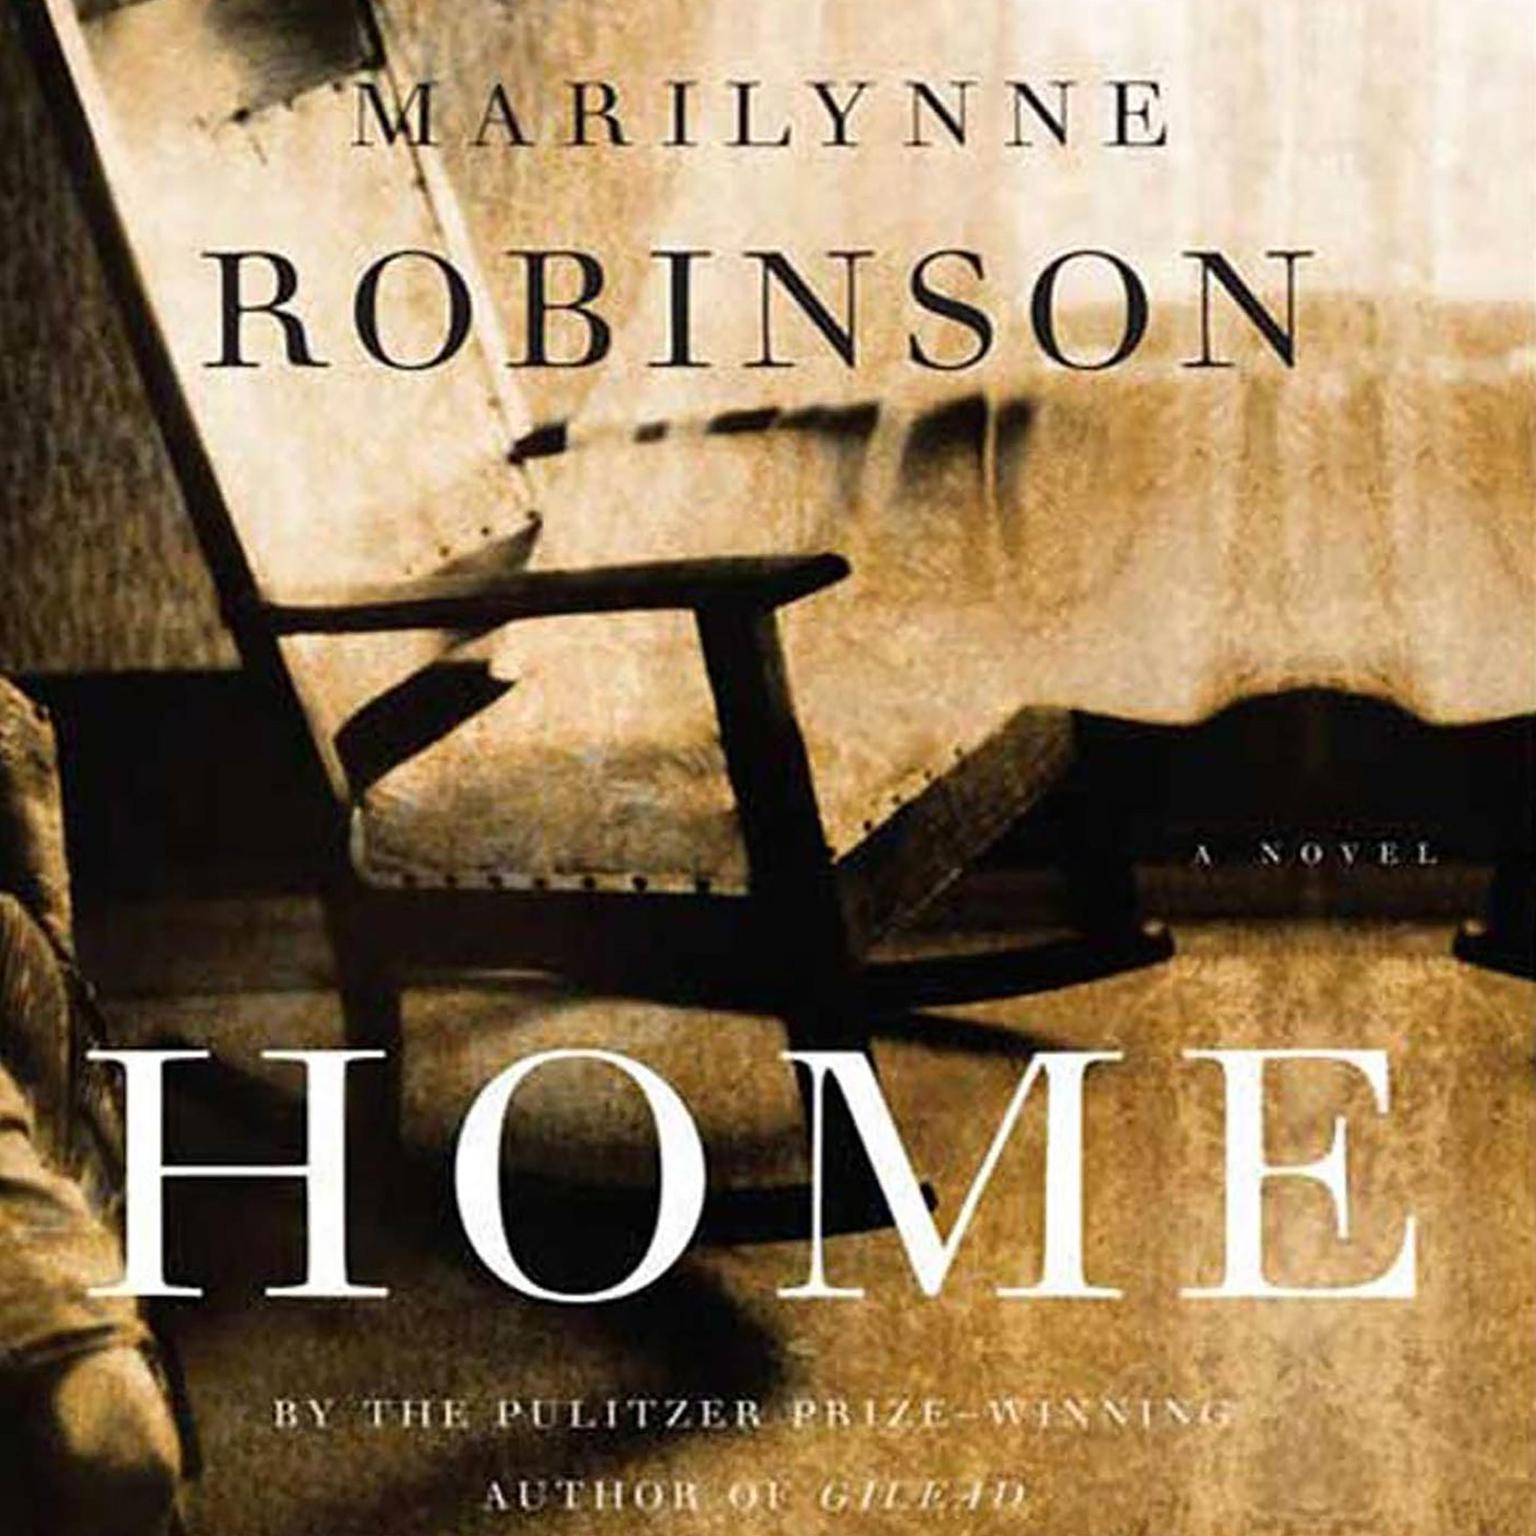 book review on home by marilynne robinson essay Book review: home, by marilynne robinson 10 march 2012  new york times book review a guy's moleskine notebook literary license savidge reads---you might also like.